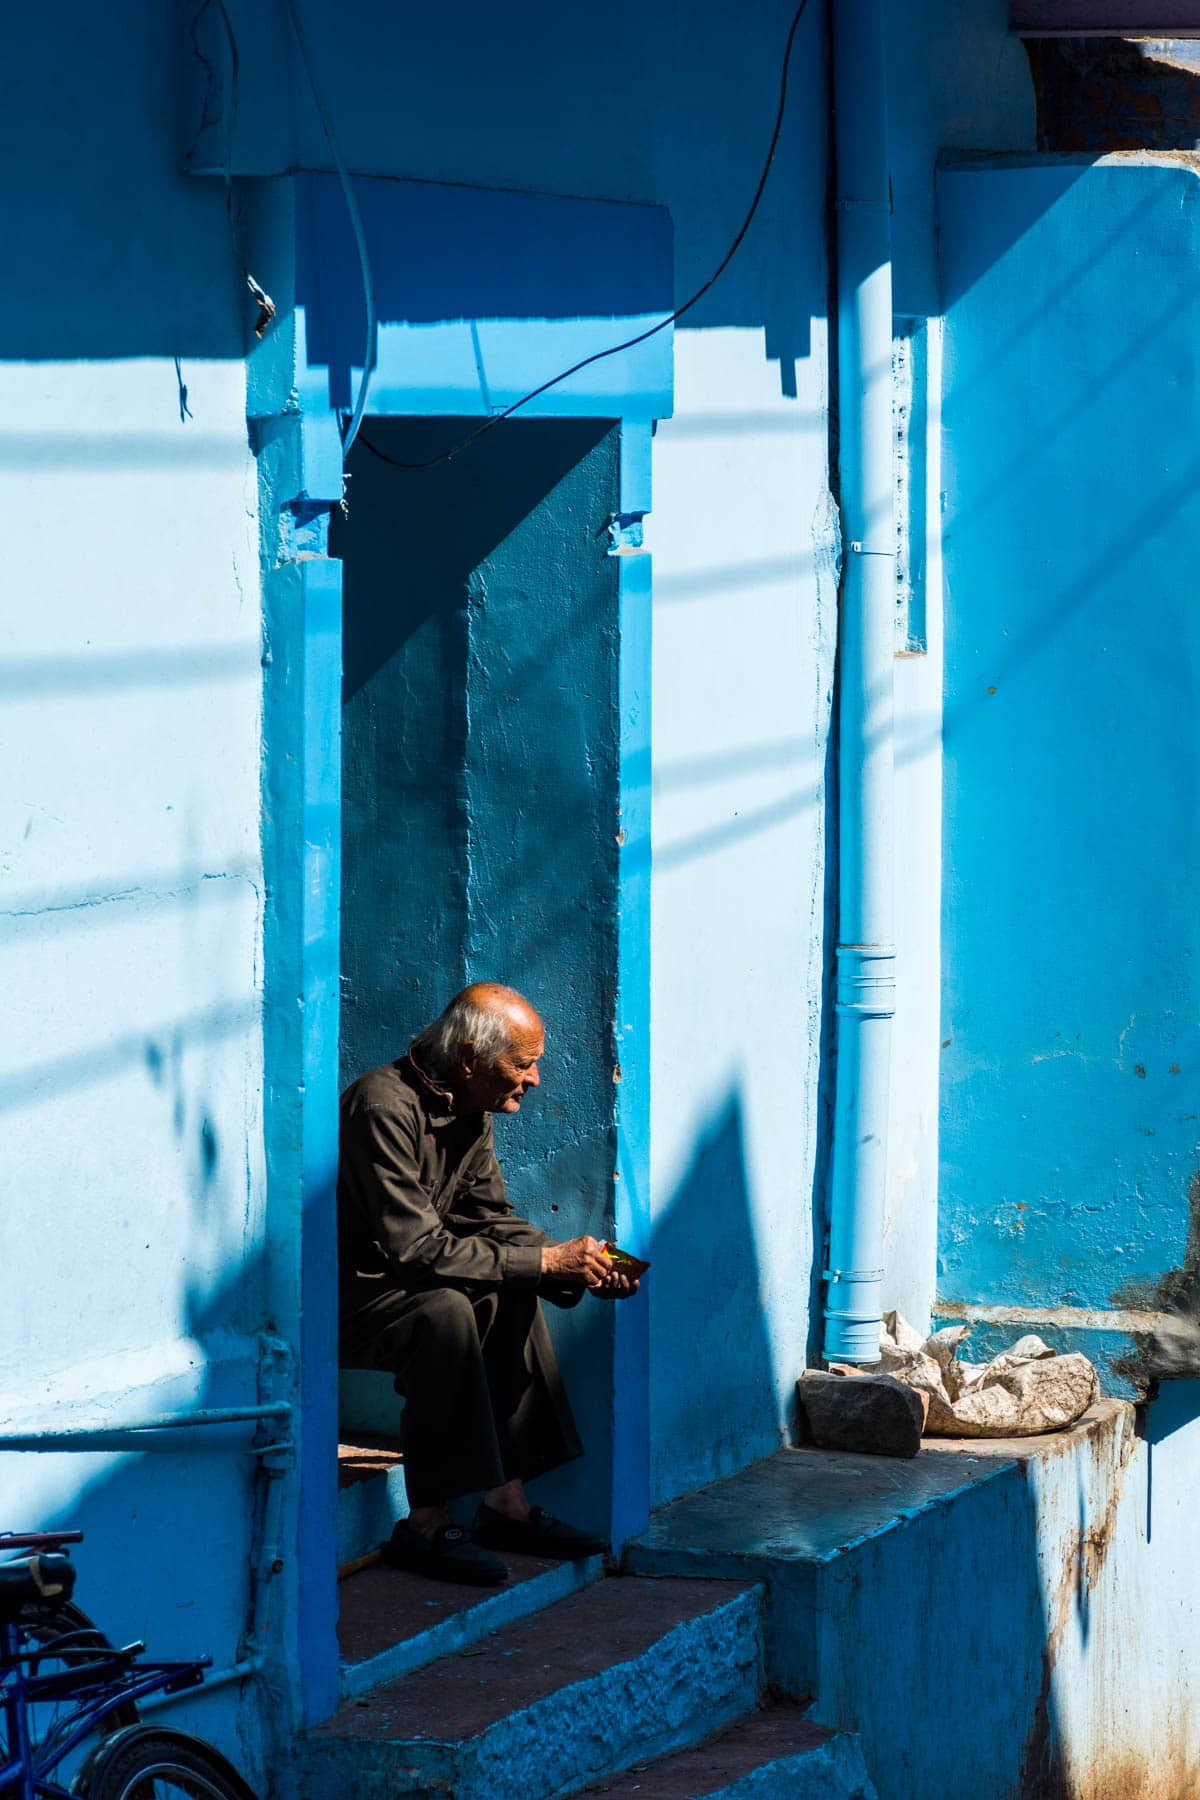 Photo essay about the streets and people of the Blue City of Jodhpur, Rajasthan, India - A man sitting on a blue stoop - Lost With Purpose